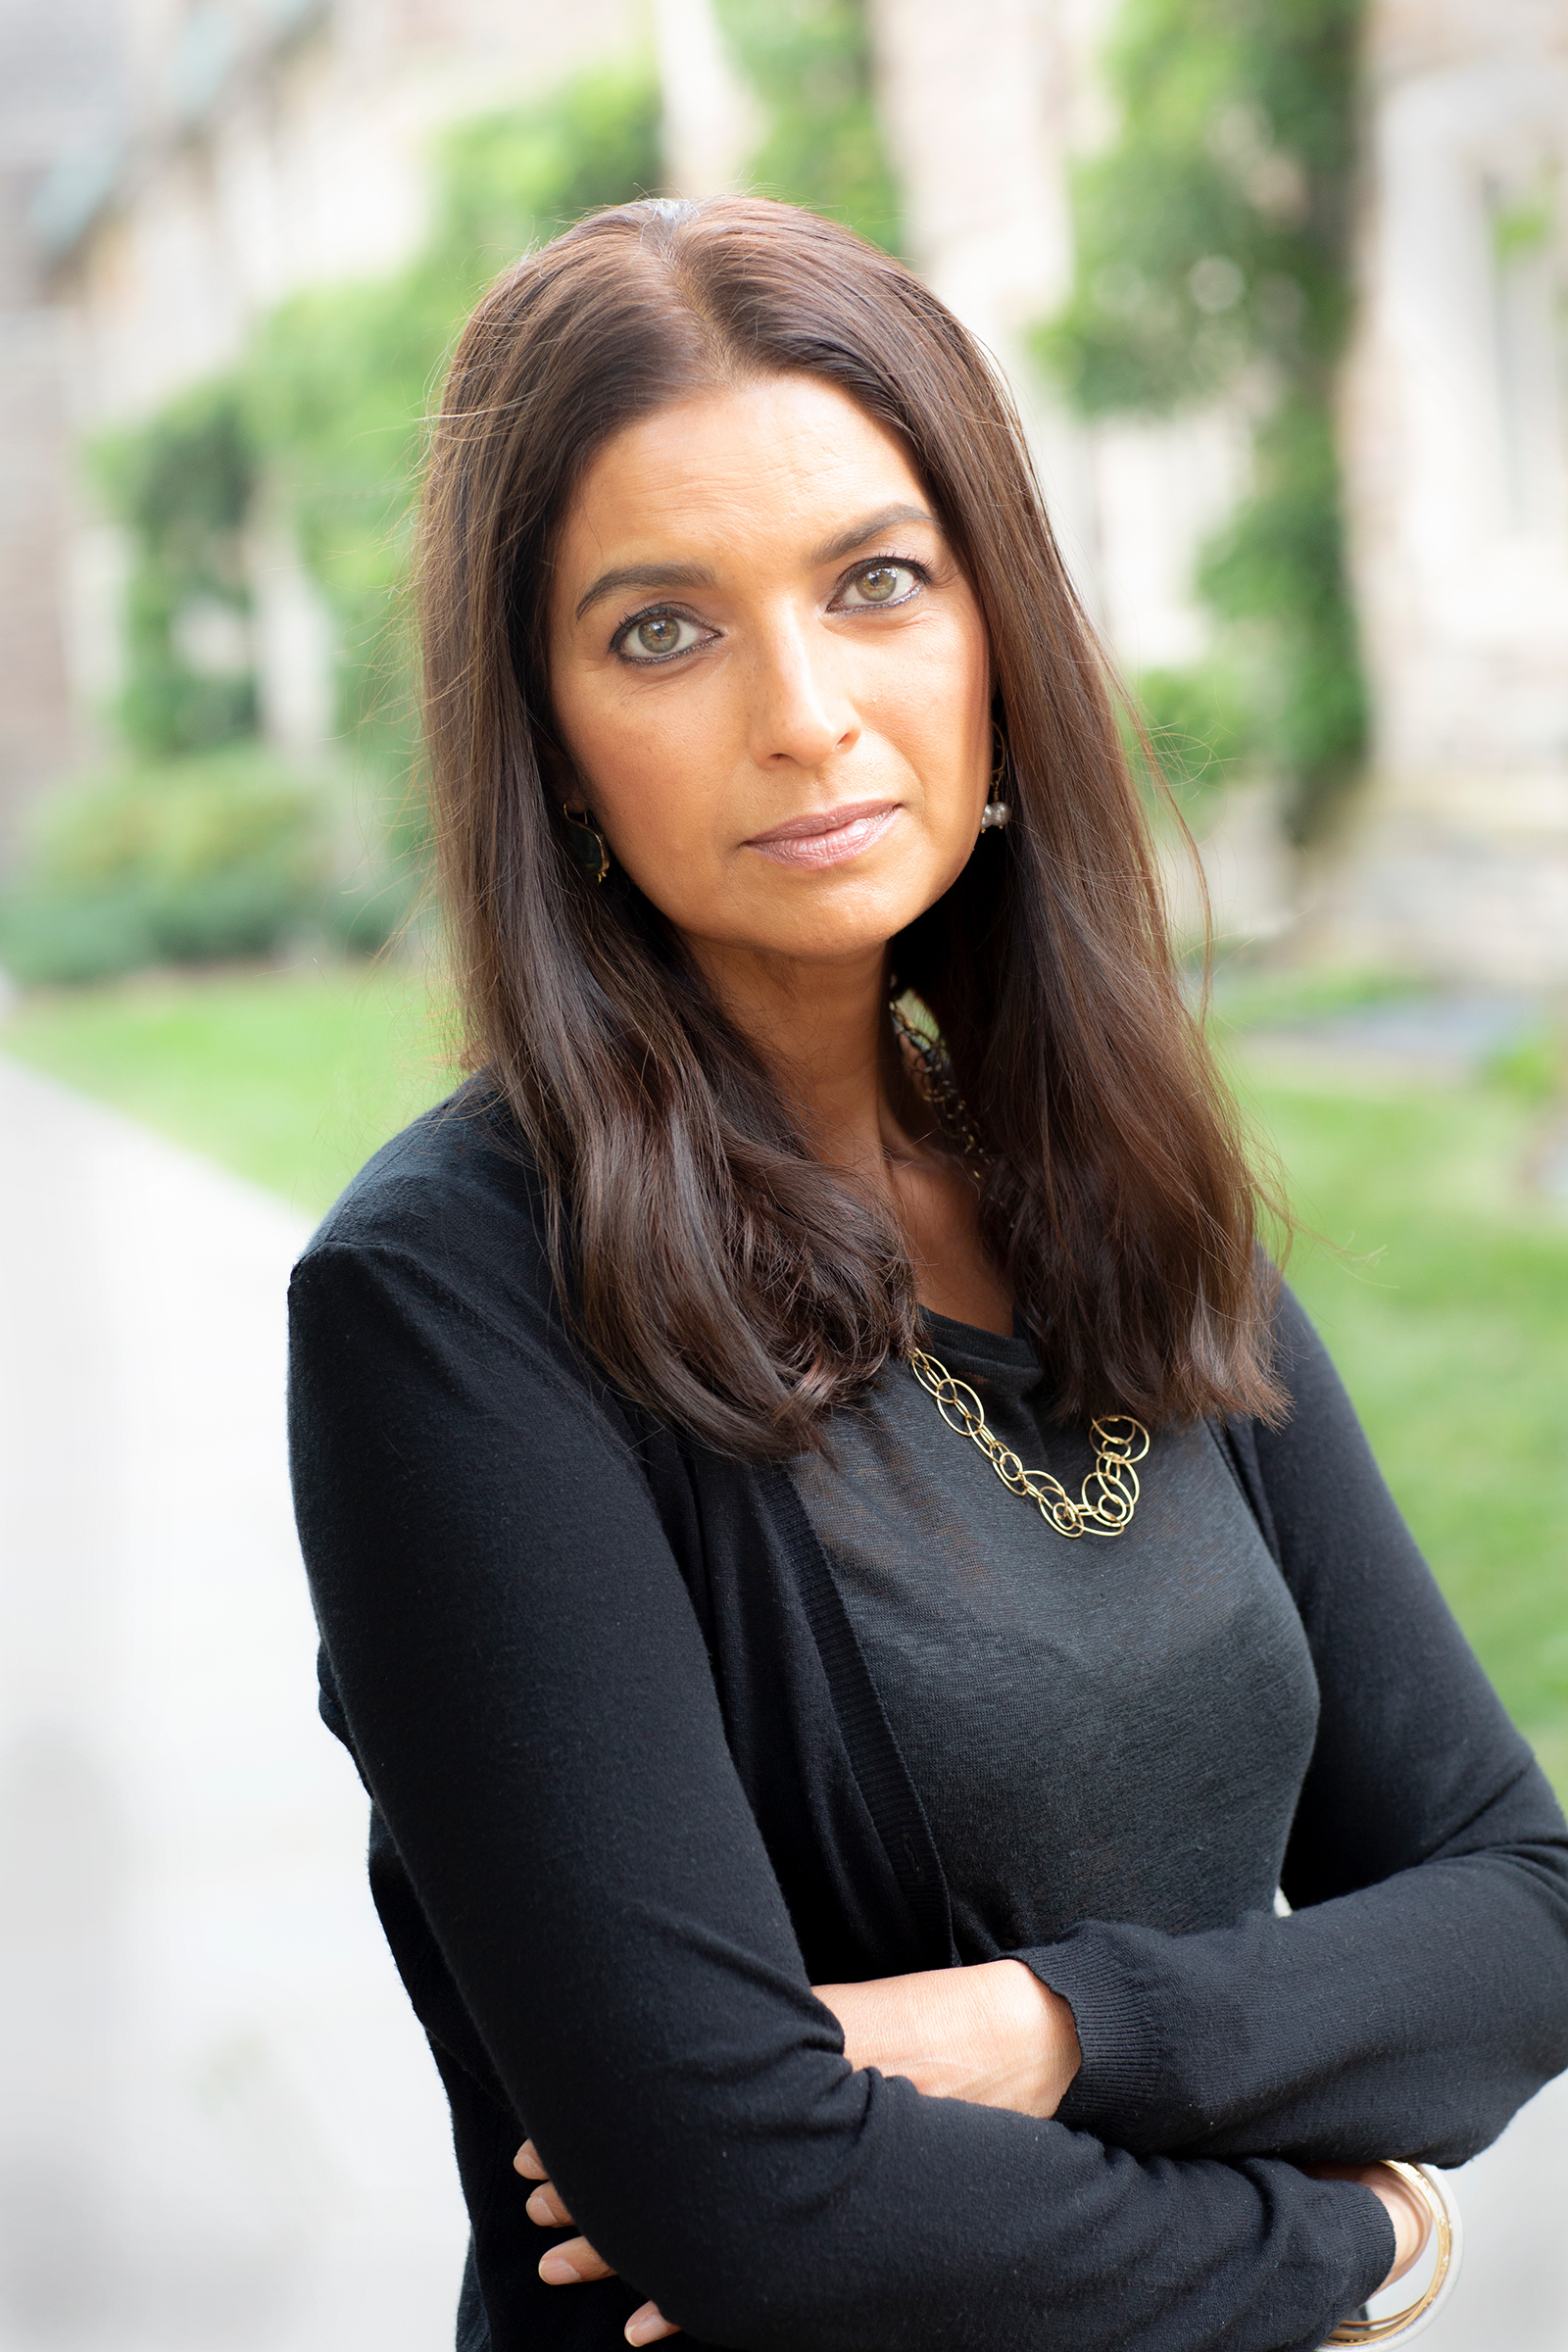 Author Jhumpa Lahiri began writing  Whereabouts  in 2015 while she was living in Rome.